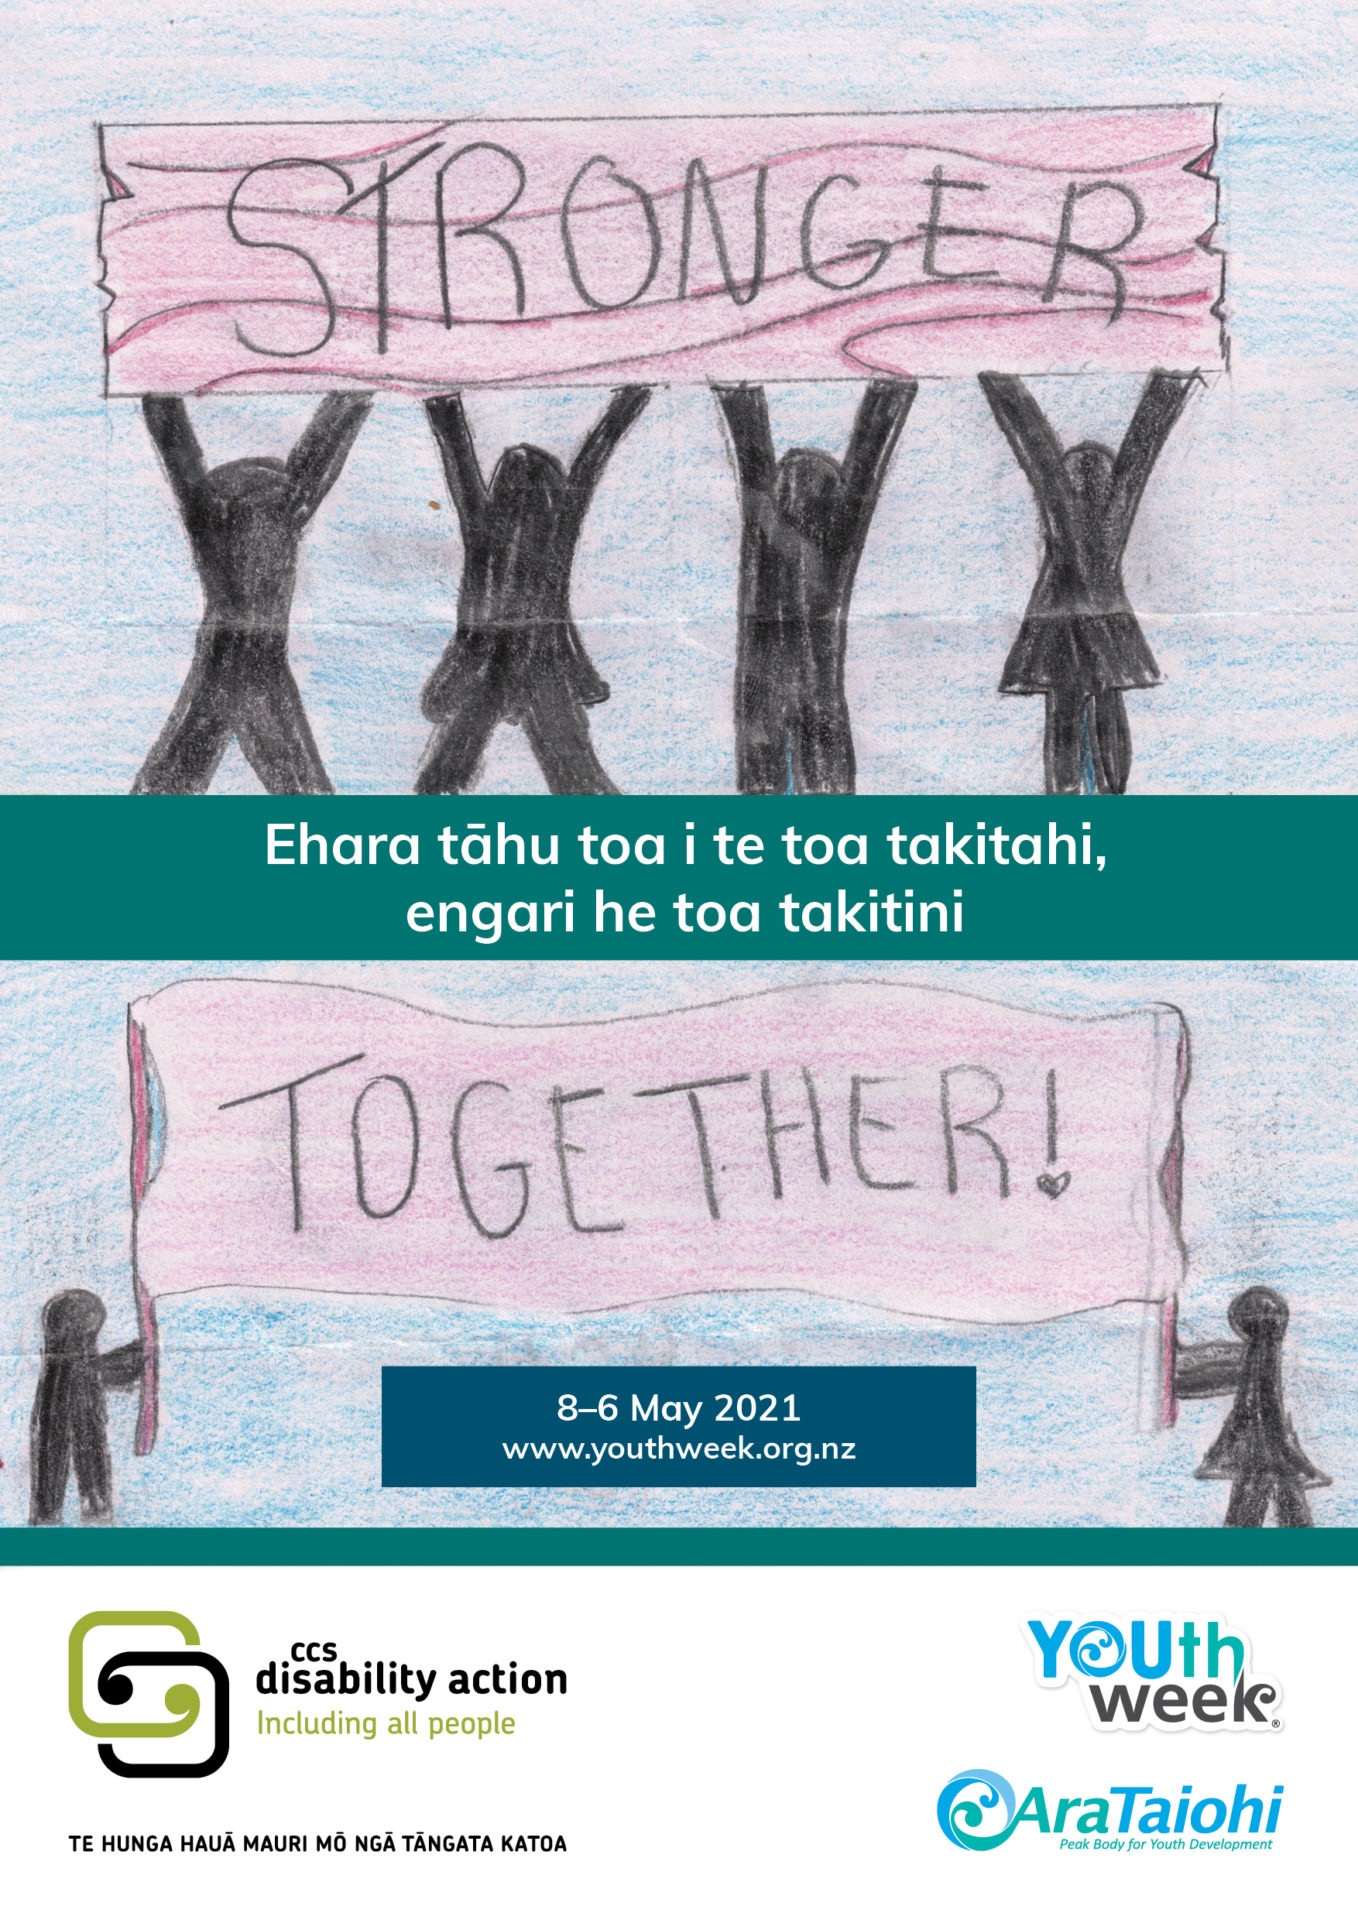 """At the top of the poster are Silhouettes of 4 human shapes with hands in the air and holding up a sign that says """"Stronger"""" They are standing on a typed box that says """"Ehara tāhu toa i te toa takitahi, engari he toa takitini"""". Under this are 2 Silhouettes of human shapes (one ofn the left and one in the right) holding a flag that says """"Together!"""". Youth Week, Ara Taiohi and CCS Disability Action logos are shown at the bottom."""